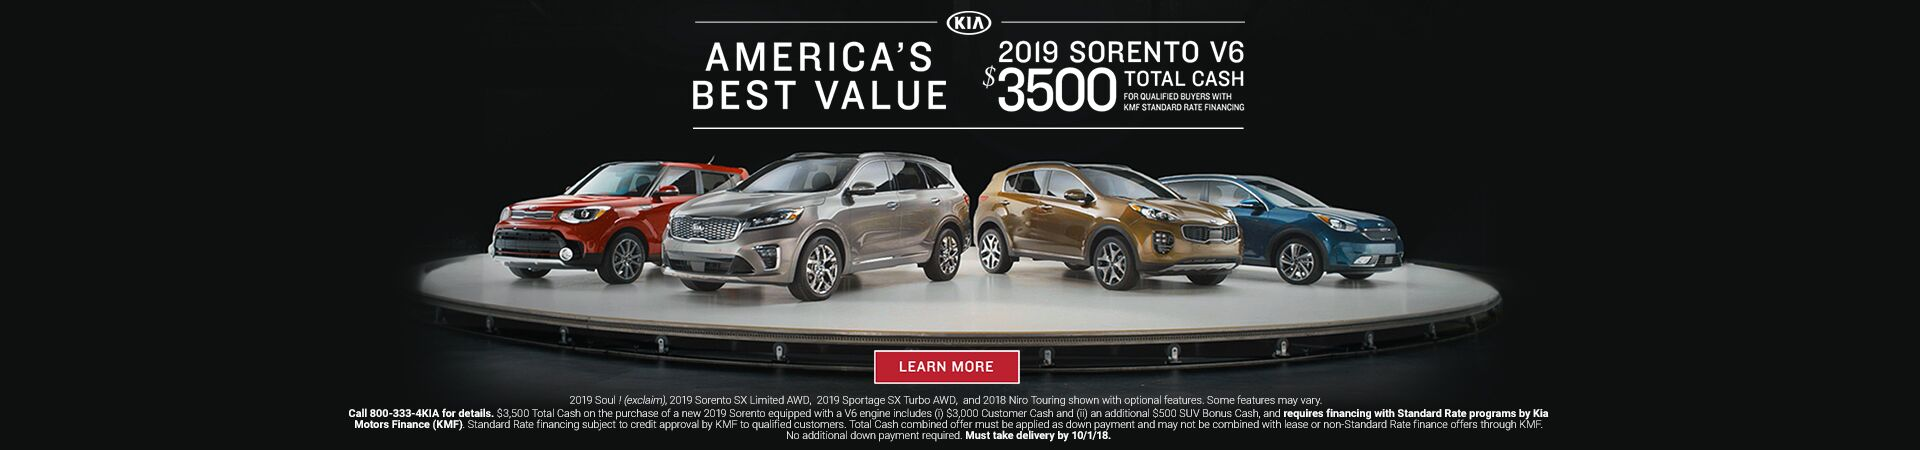 America's Best Value 2019 Sorento Family Kia of St. Augustine